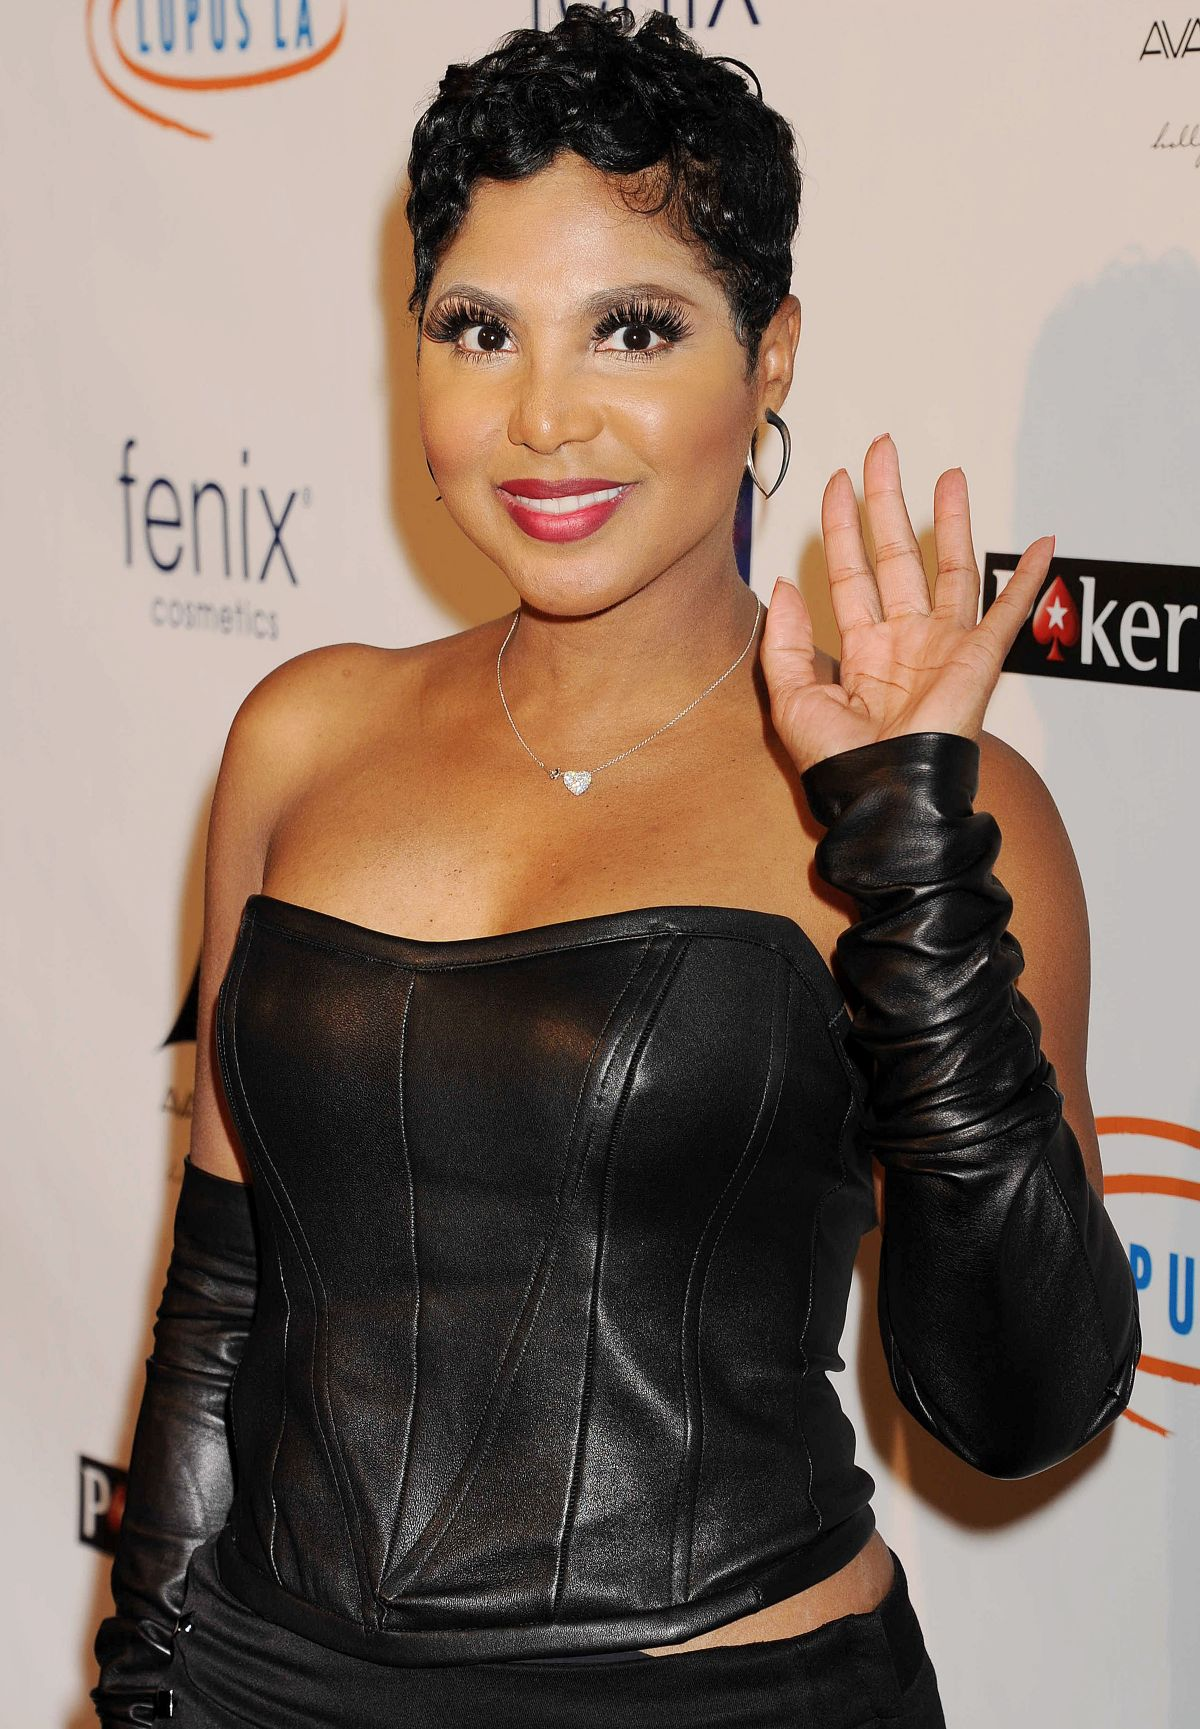 toni braxton перевод песенtoni braxton mp3, toni braxton песни, toni braxton yesterday, toni braxton suddenly, toni braxton - spanish guitar, toni braxton 2016, toni braxton yesterday скачать, toni braxton please скачать, toni braxton слушать, toni braxton spanish guitar mp3, toni braxton suddenly скачать, toni braxton i don't want to, toni braxton fairy tale, toni braxton spanish guitar lyrics, toni braxton скачать песни, toni braxton trippin скачать, toni braxton how could an angel скачать, toni braxton fairy tale перевод, toni braxton биография, toni braxton перевод песен